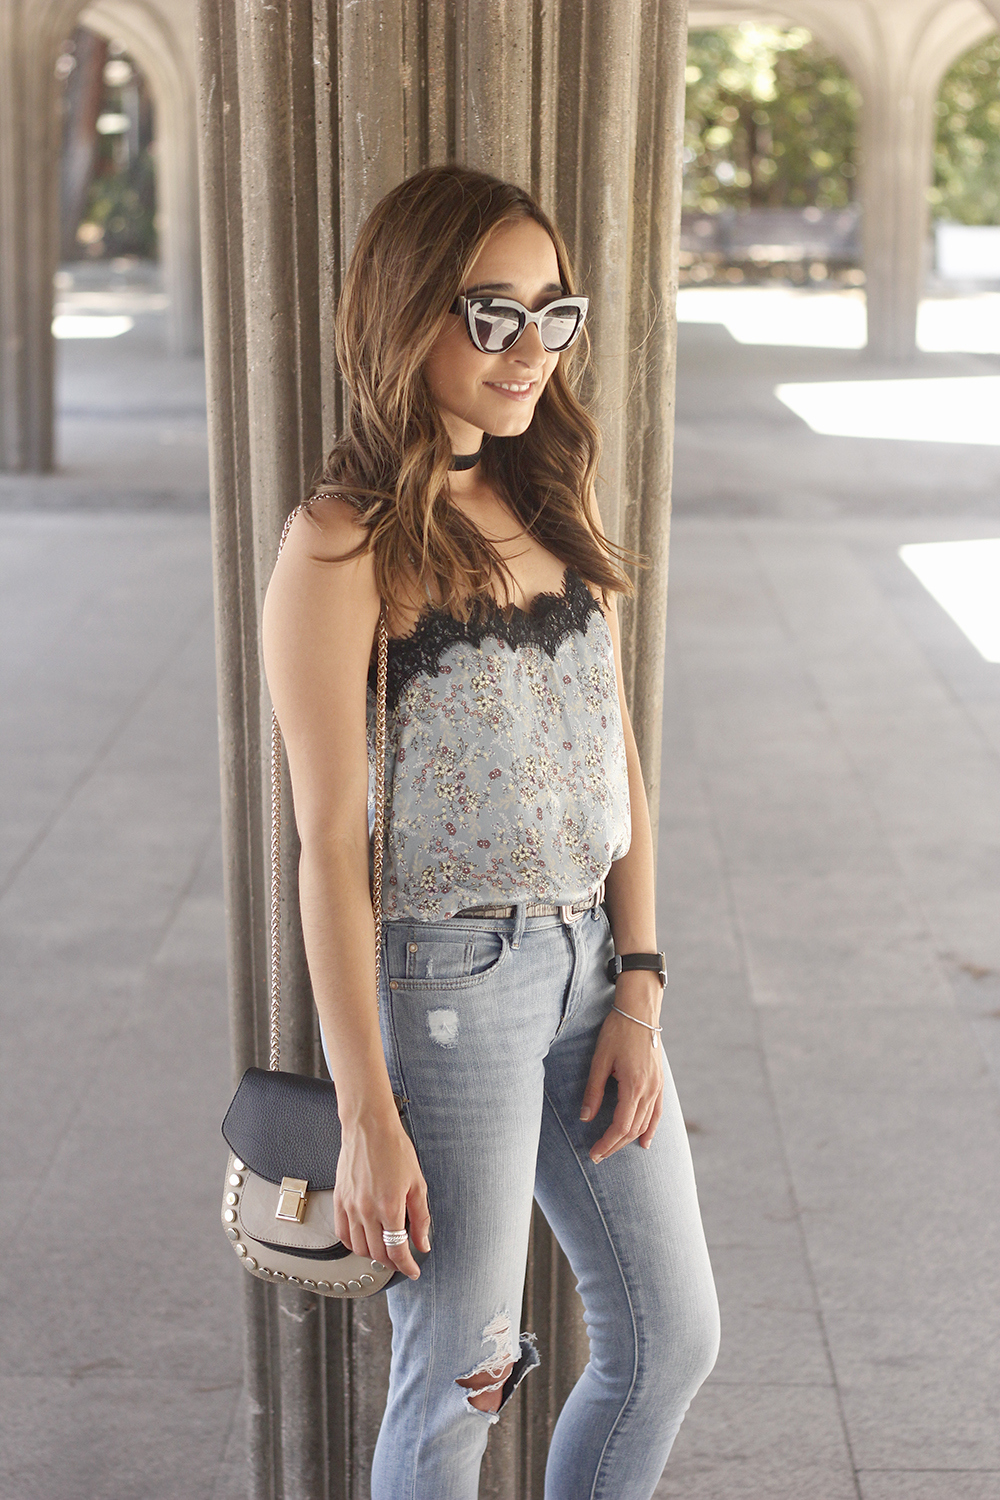 Lace top with skinny jeans heels summer outfit fashion style accesories06